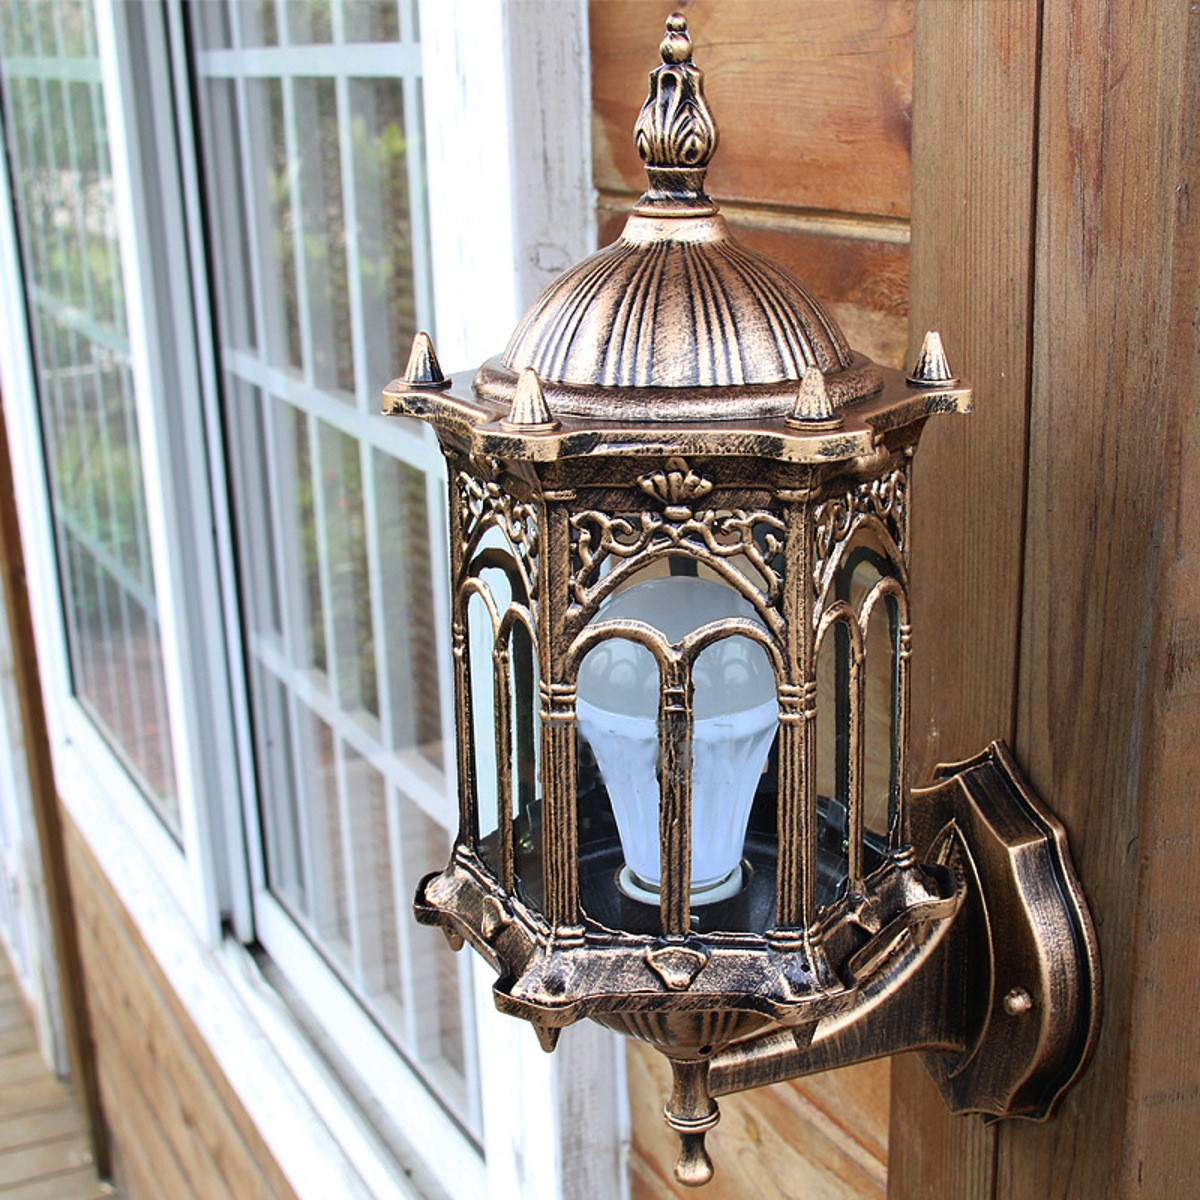 Outdoor bronze antique exterior wall light fixture - Exterior landscape lighting fixtures ...